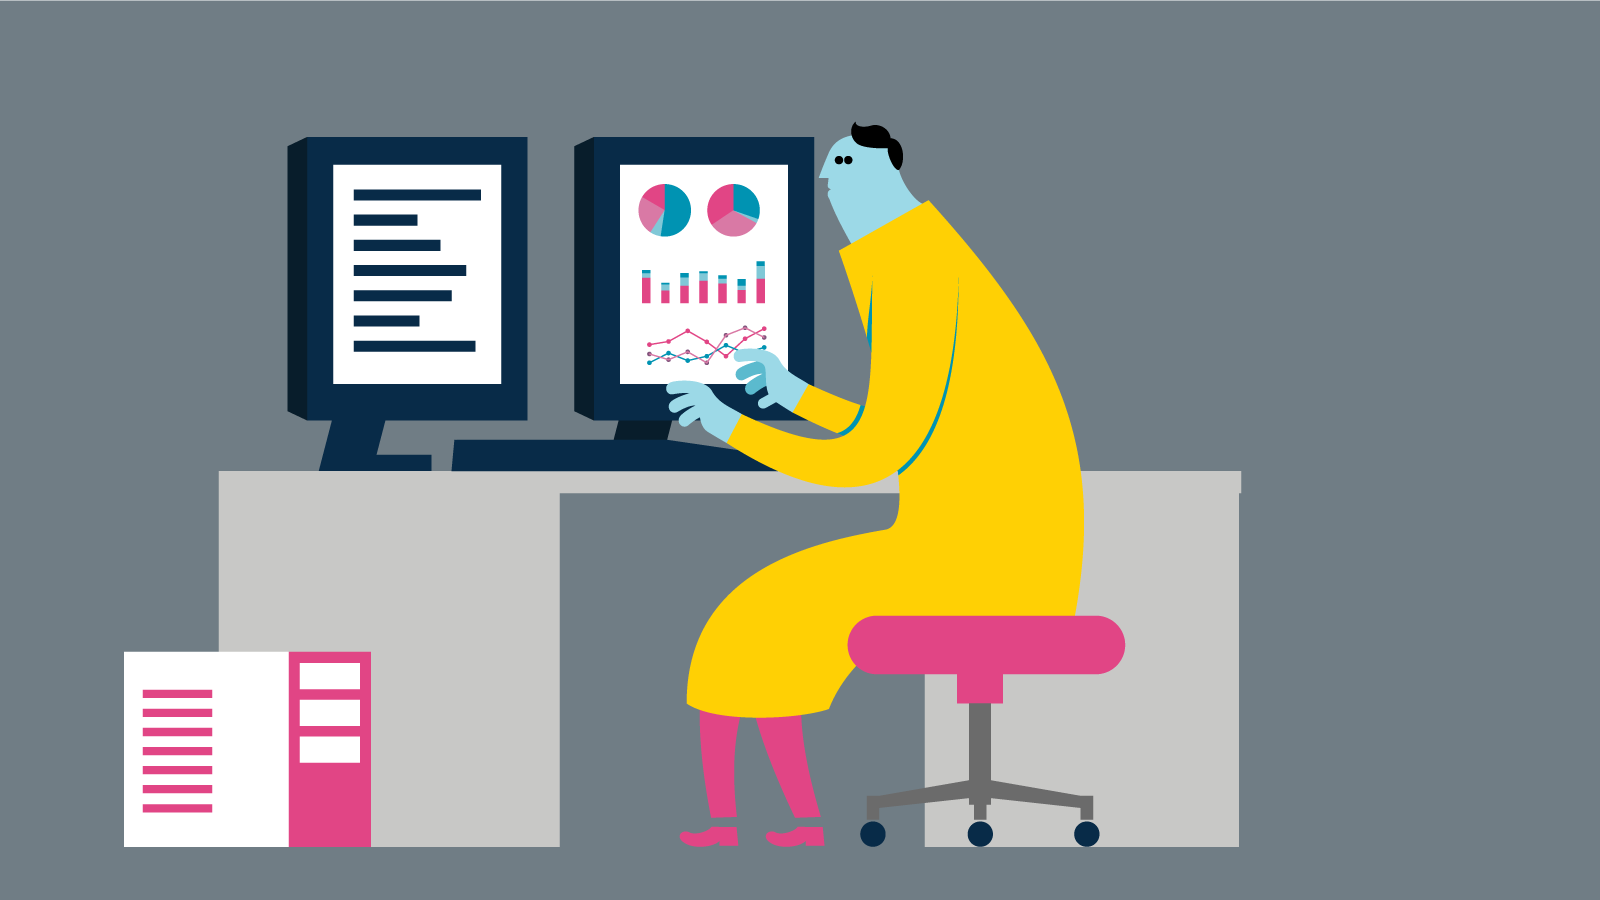 Illustration of person sitting and working at desk with two monitors.